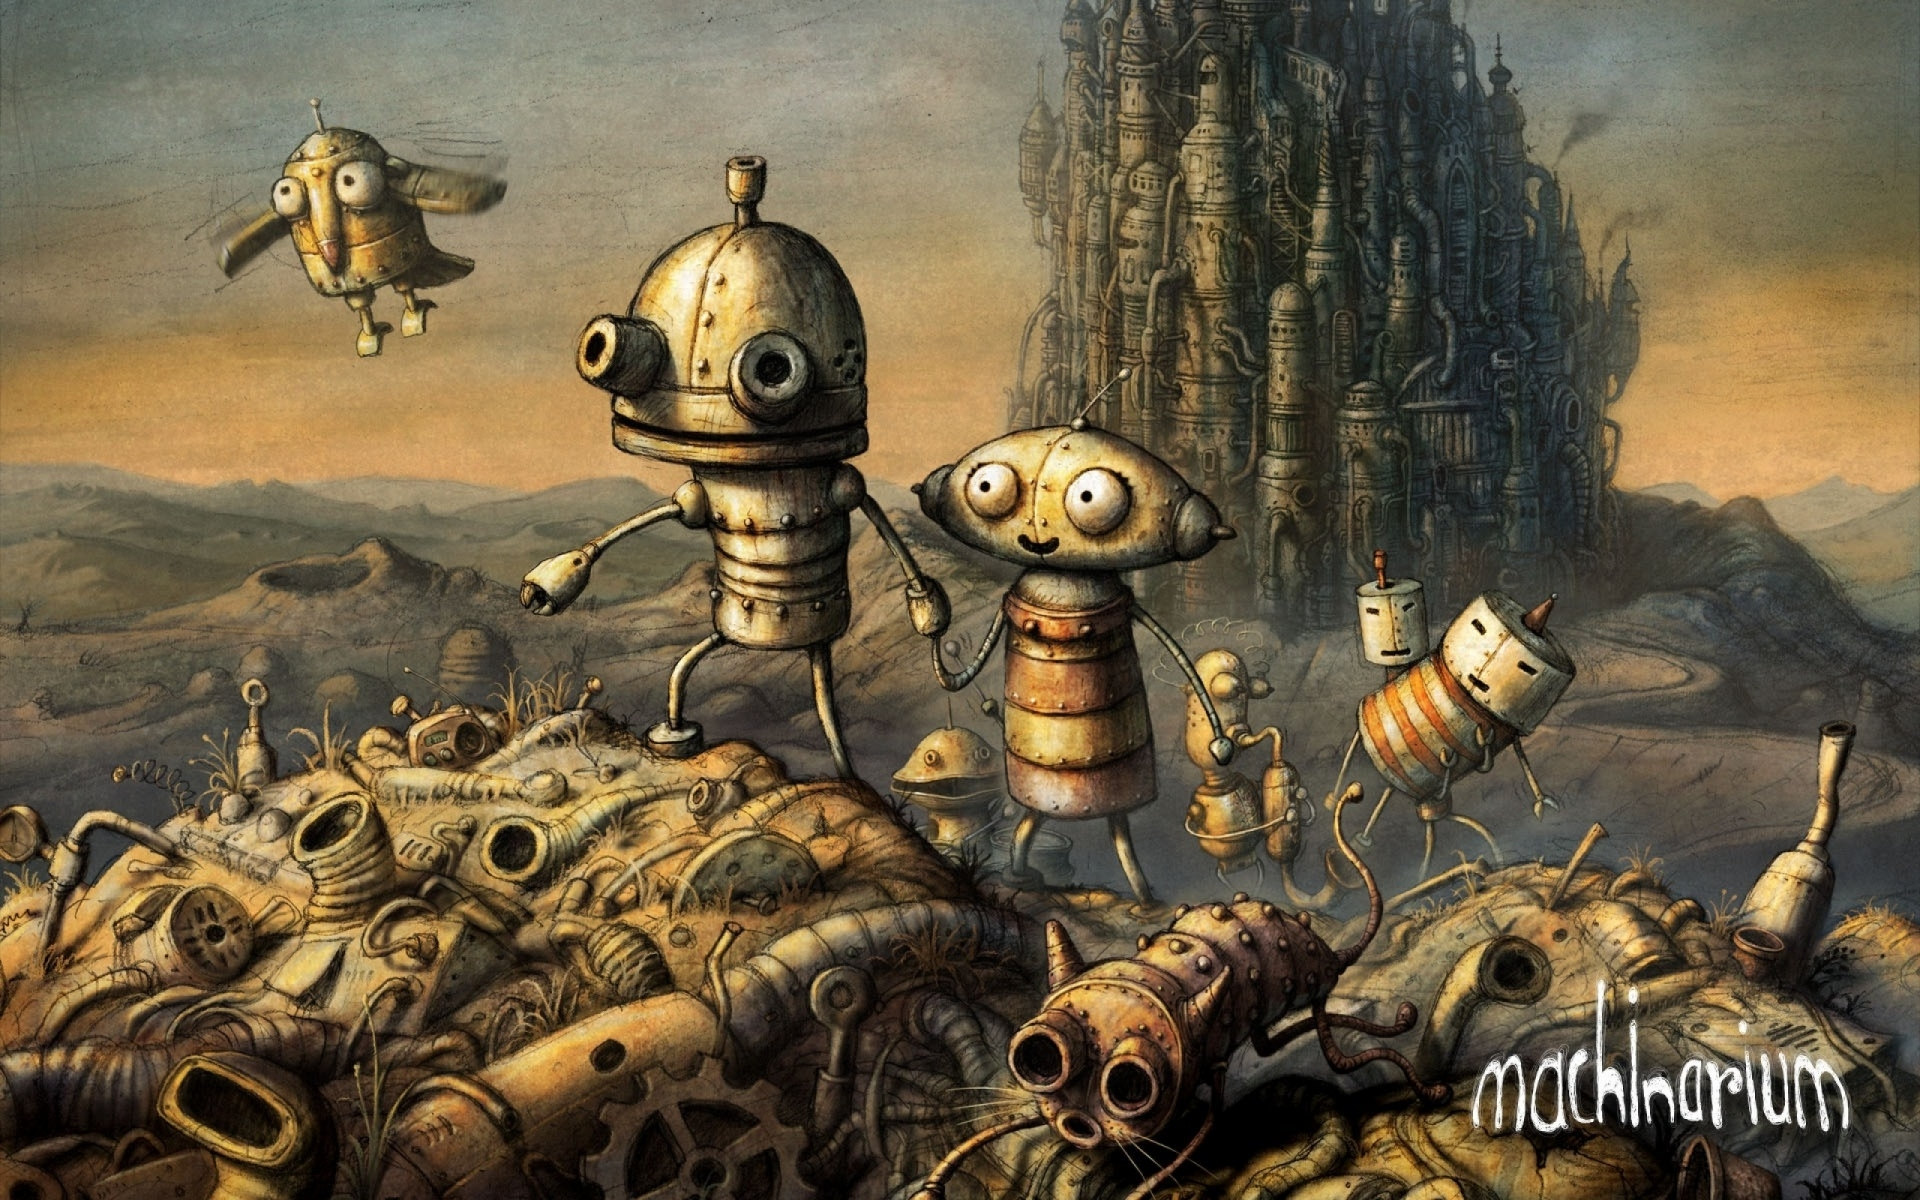 Арт к игре Machinarium